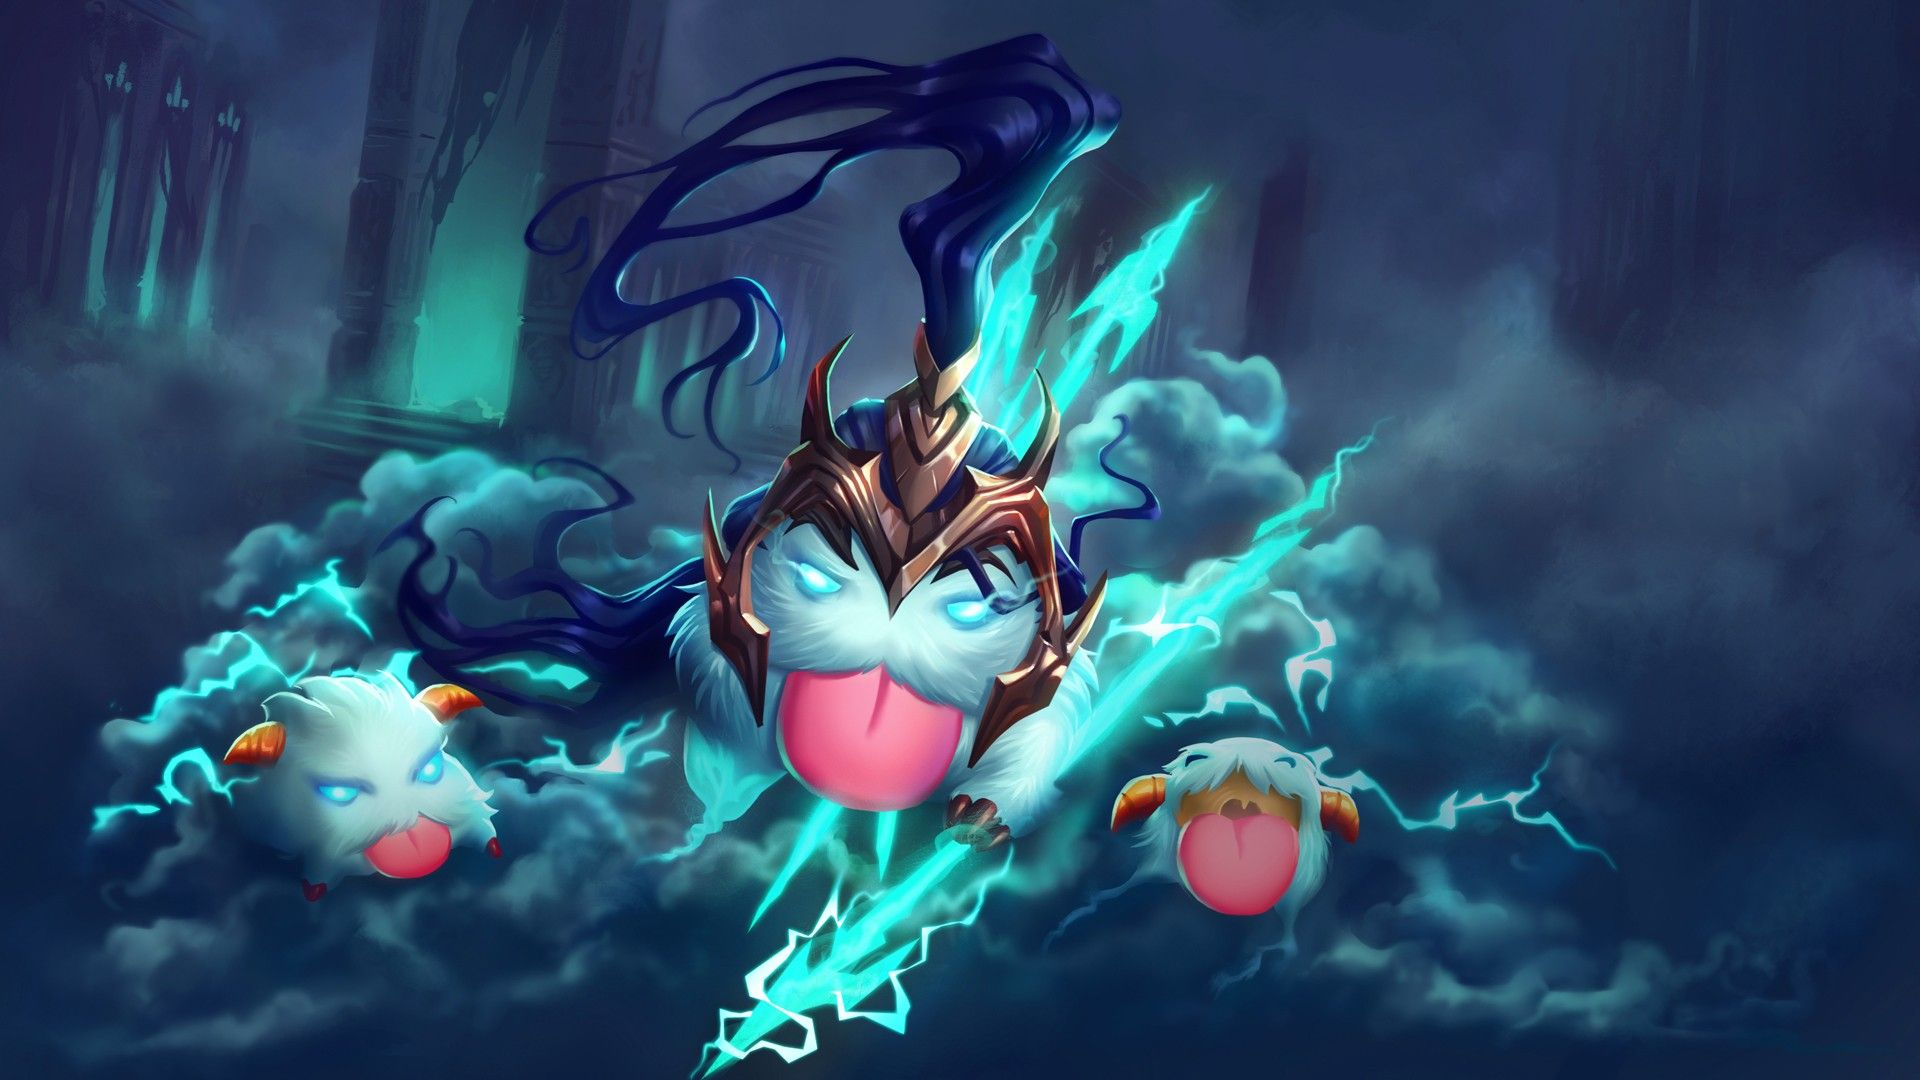 Pin On Poros League Of Legends